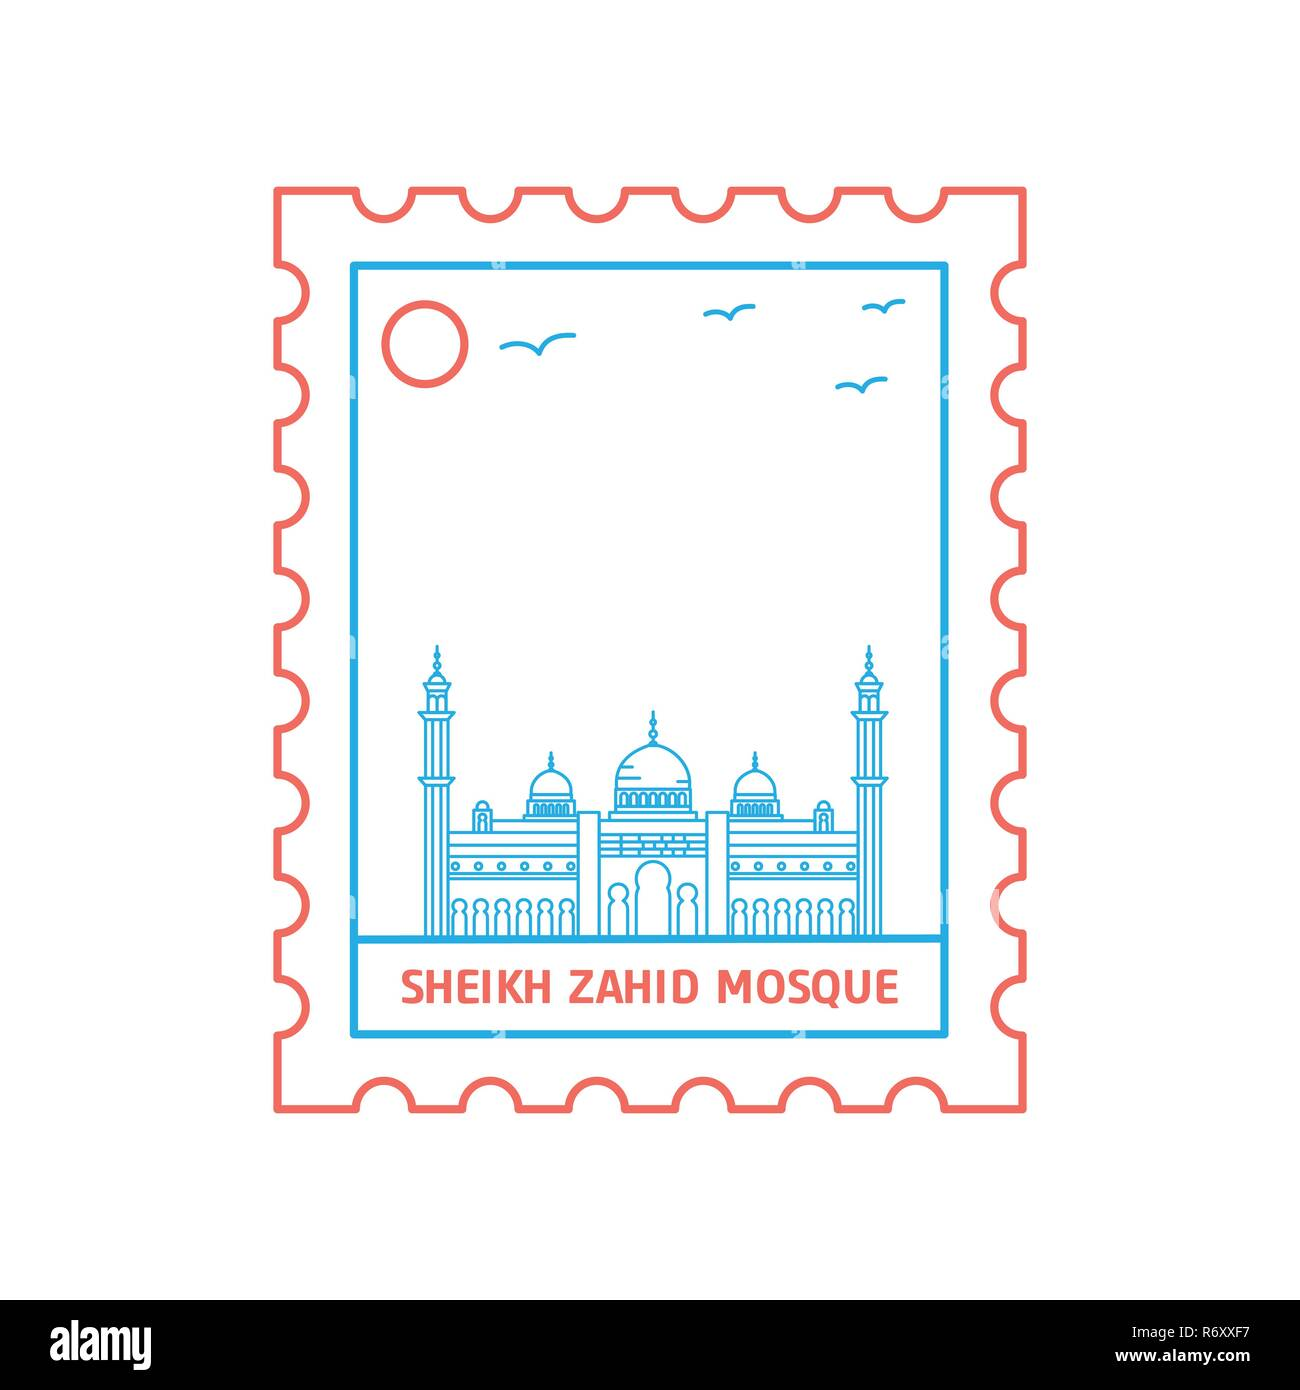 SHEIKH ZAHID MOSQUE postage stamp Blue and red Line Style, vector illustration - Stock Image